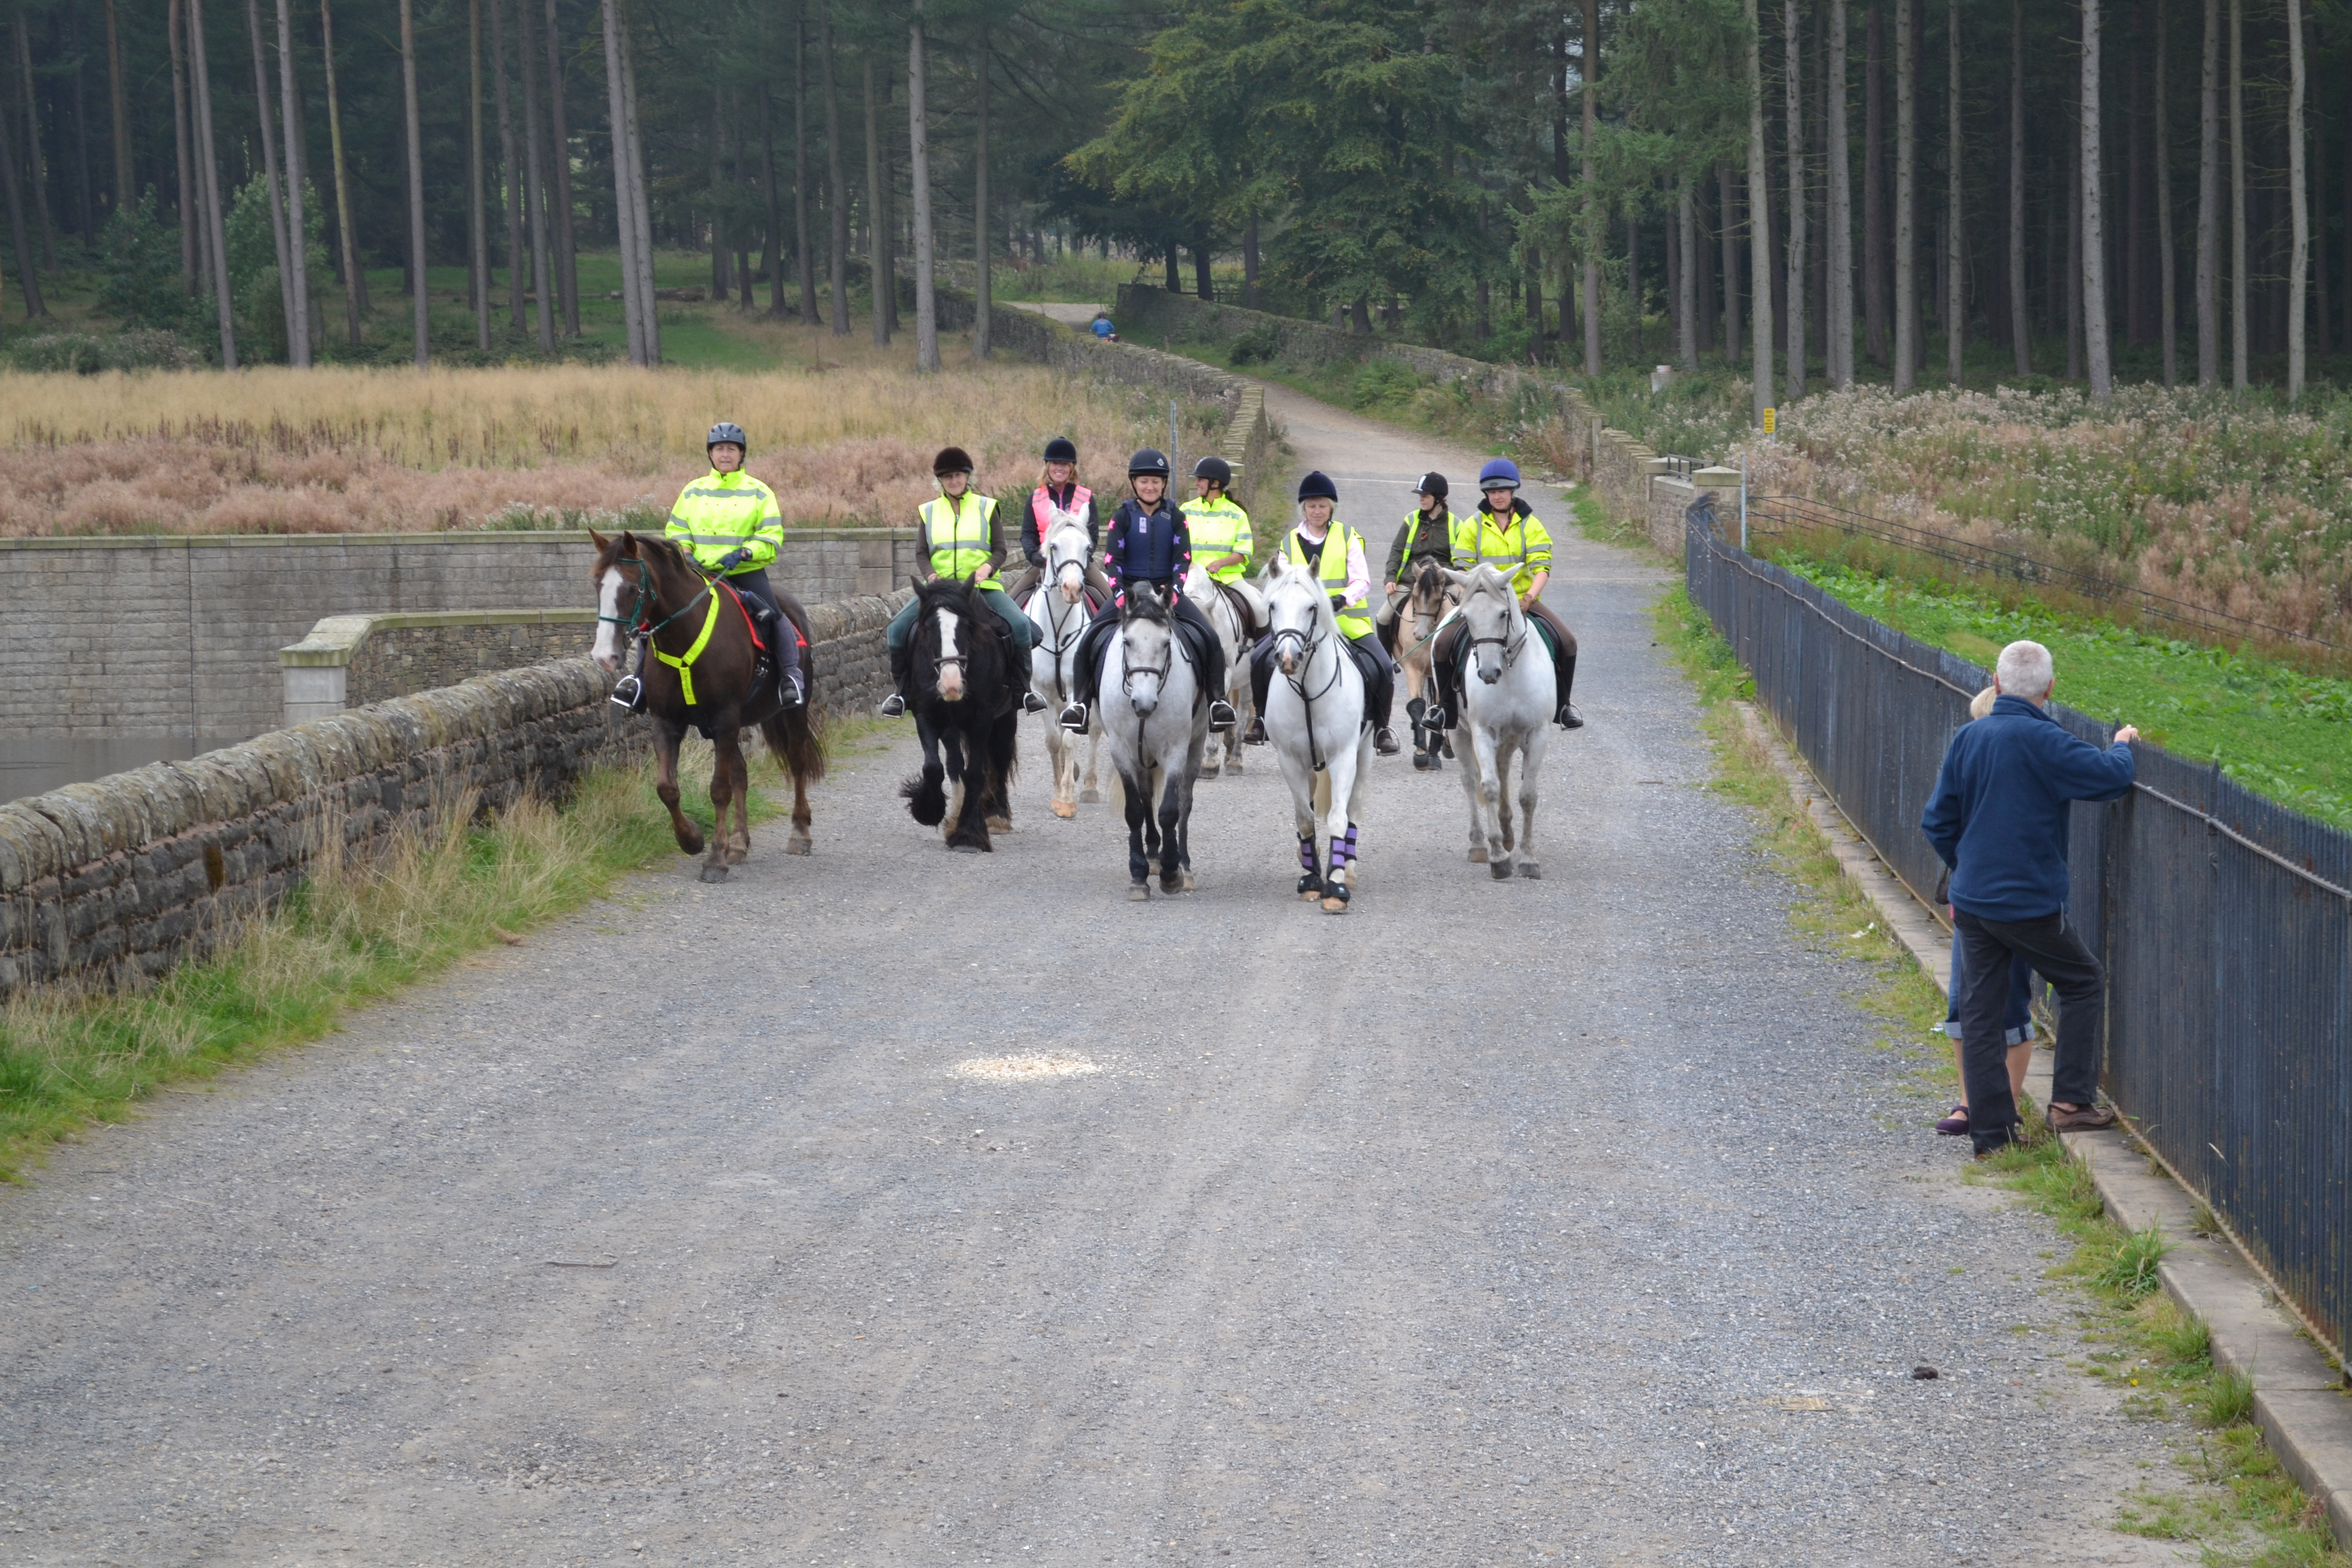 <div class='slider_caption'> <h1>Kirklees Bridleways Group</h1> <a class='slider-readmore' href='http://kirkleesbridlewaysgroup.co.uk/about/'>Our main aim is to protect and improve our bridleways network.</a> </div>